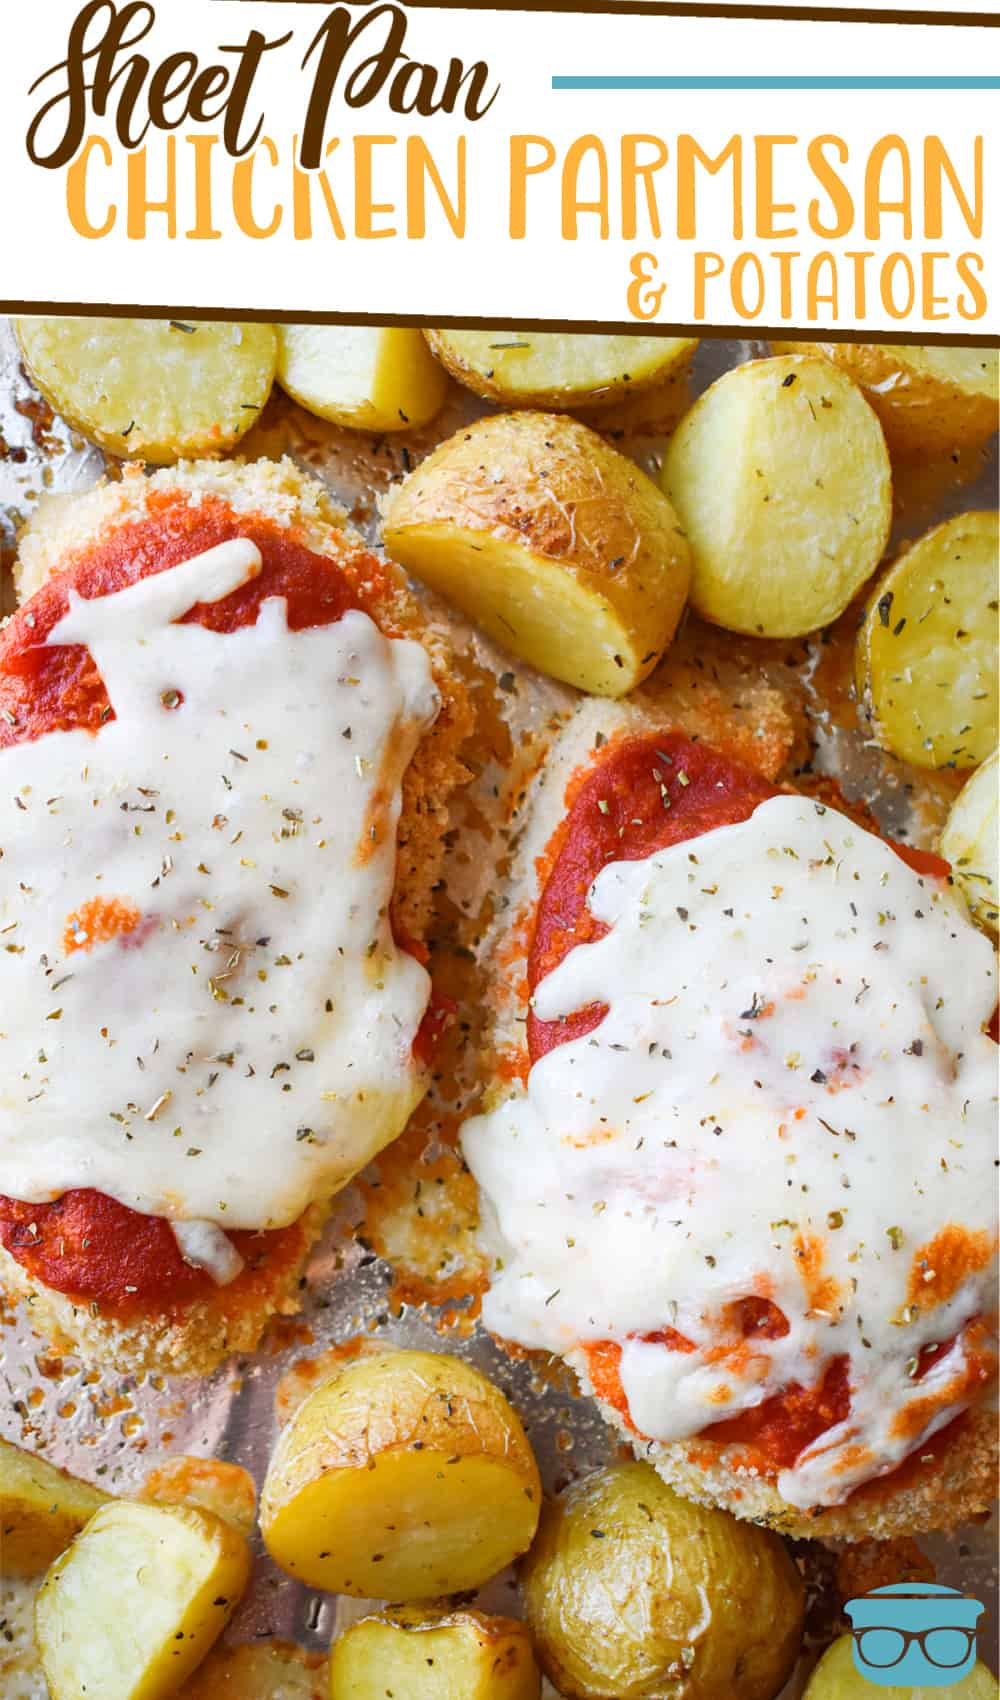 This Baked Sheet Pan Chicken Parmesan with Roasted Italian Potatoes is a meal in one! Baked, crunchy chicken, marinara sauce and cheese!